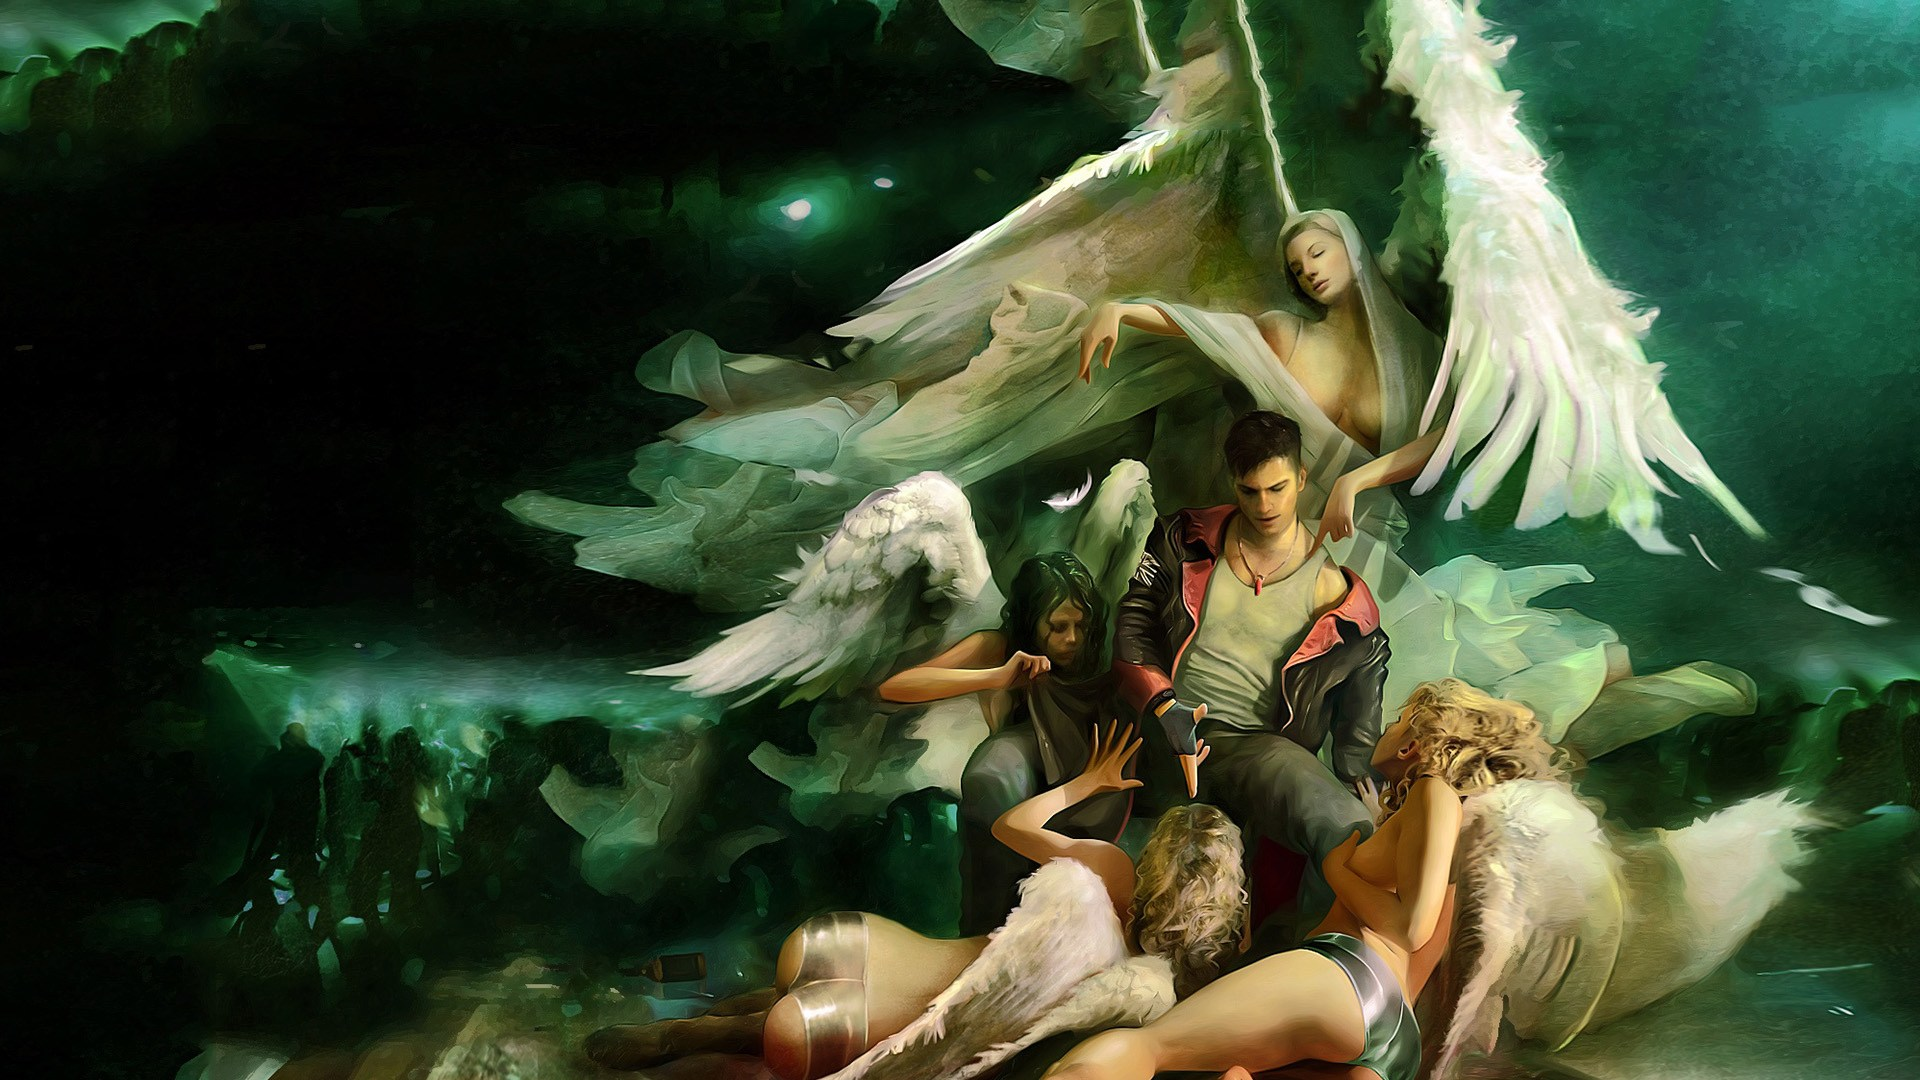 Devil May Cry K Ultra Hd Wallpaper Background Image X